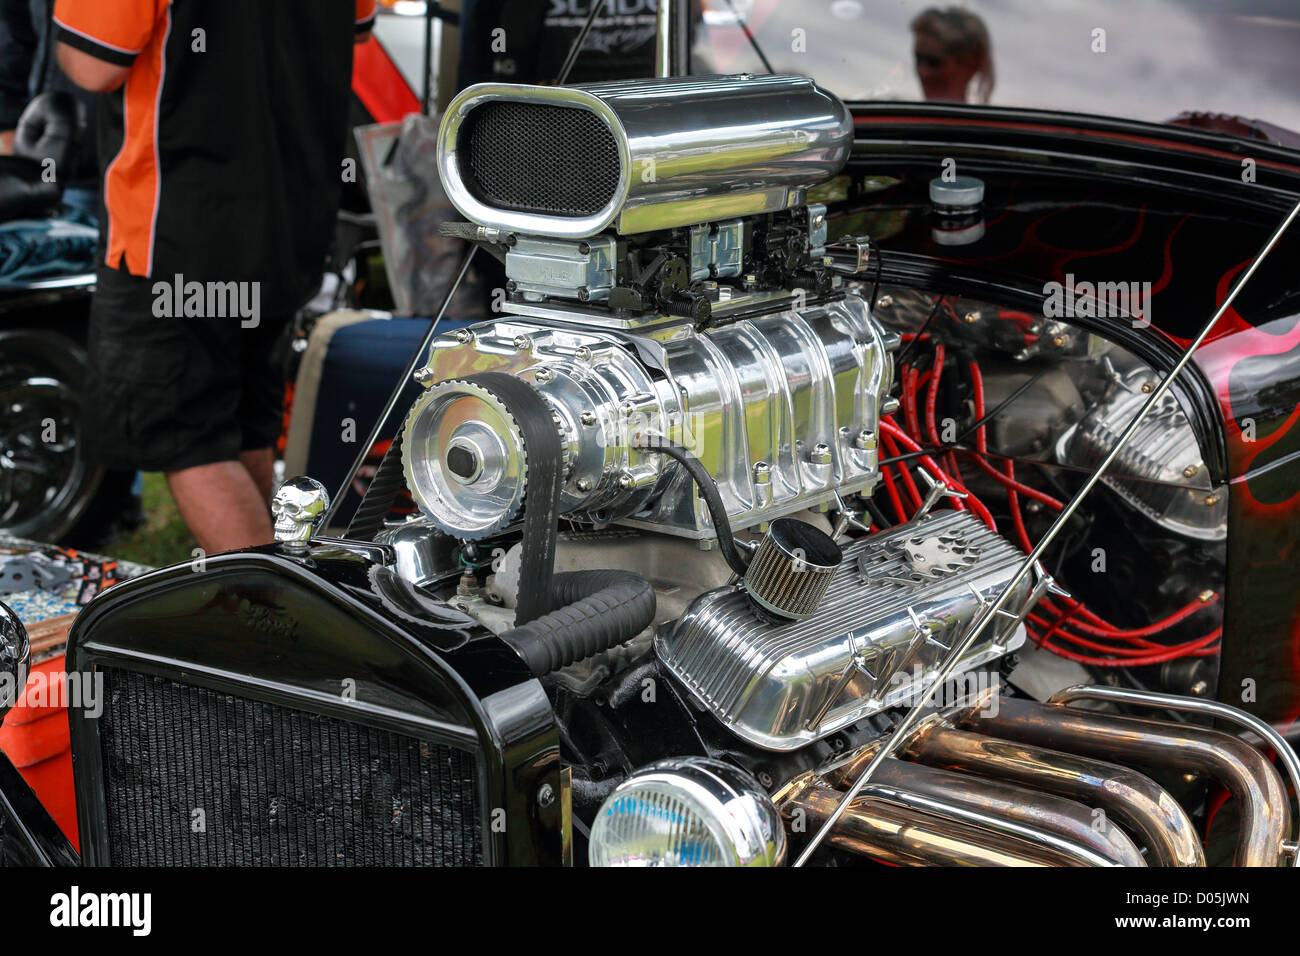 A V8 engine showing performance turbo blower on a hot rod at the ...